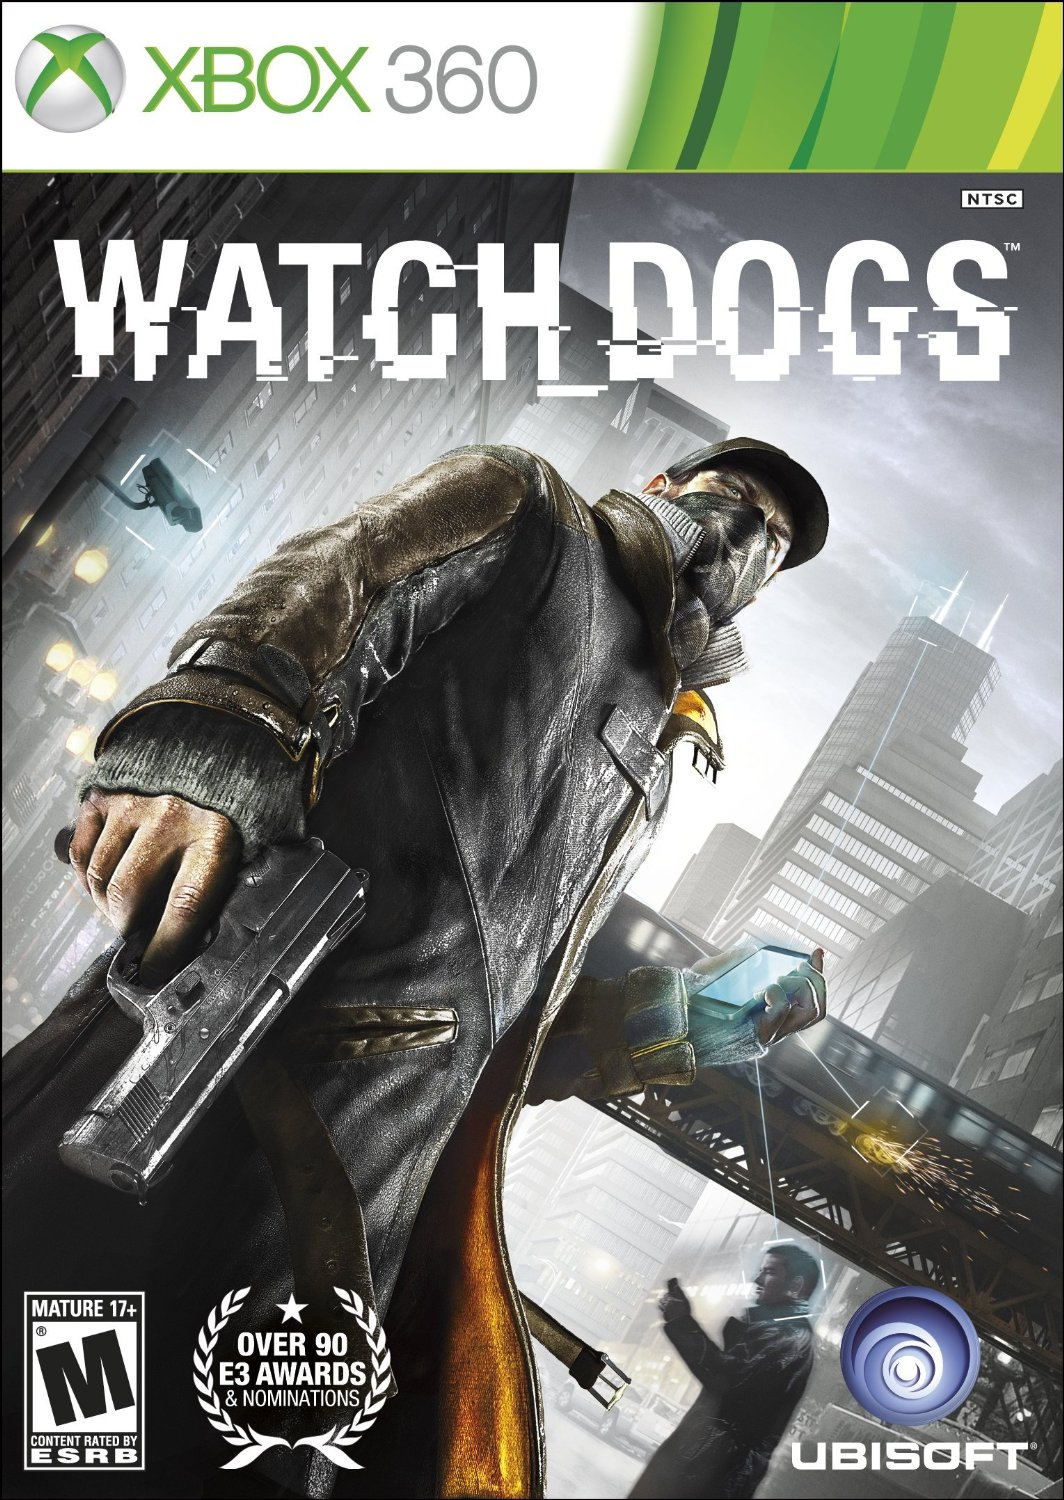 WATCH DOG 2014